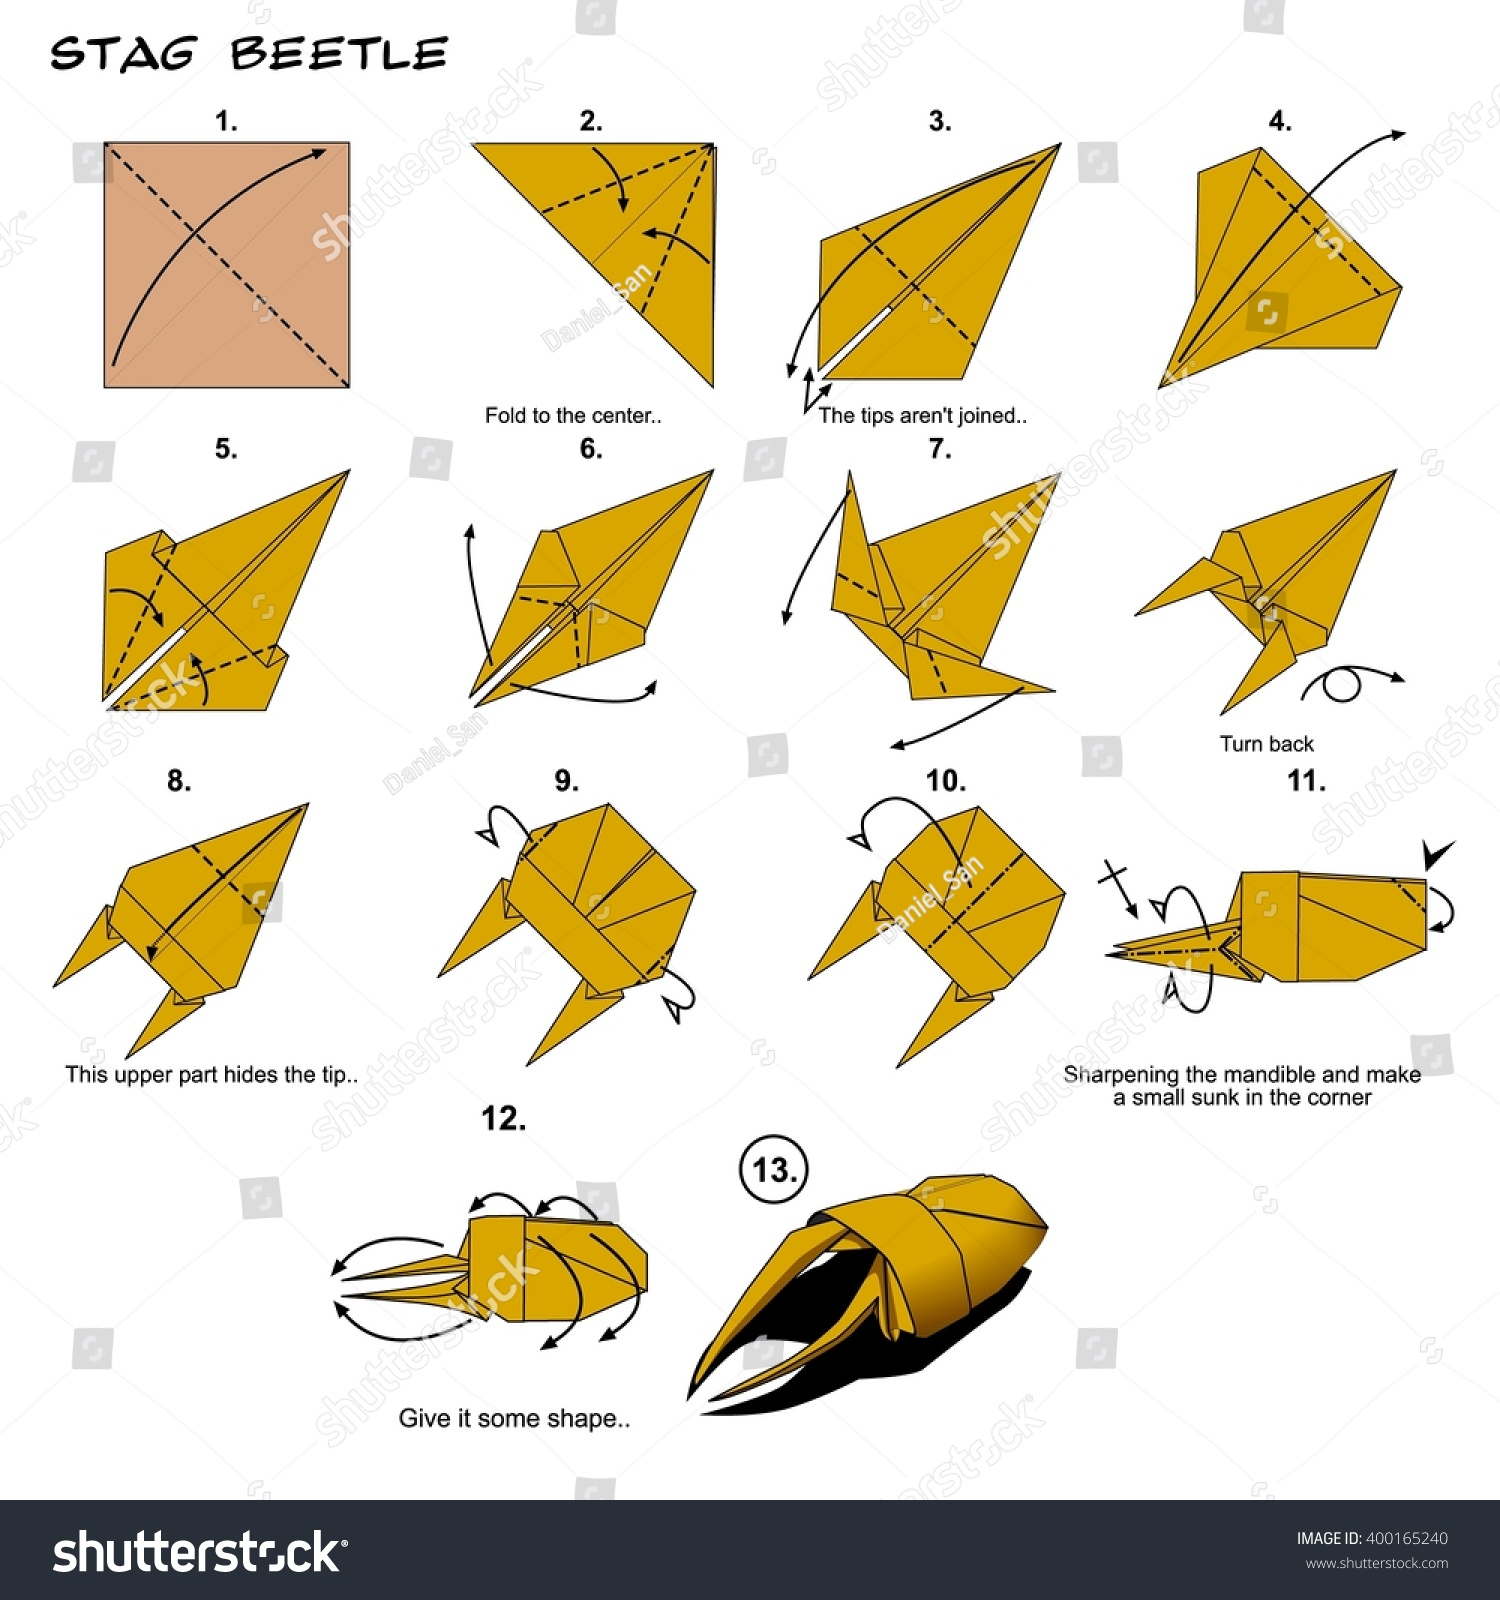 Origami Animal Insect Stag Beetle Art Stock Illustration 400165240 Instructions Diagram Steps